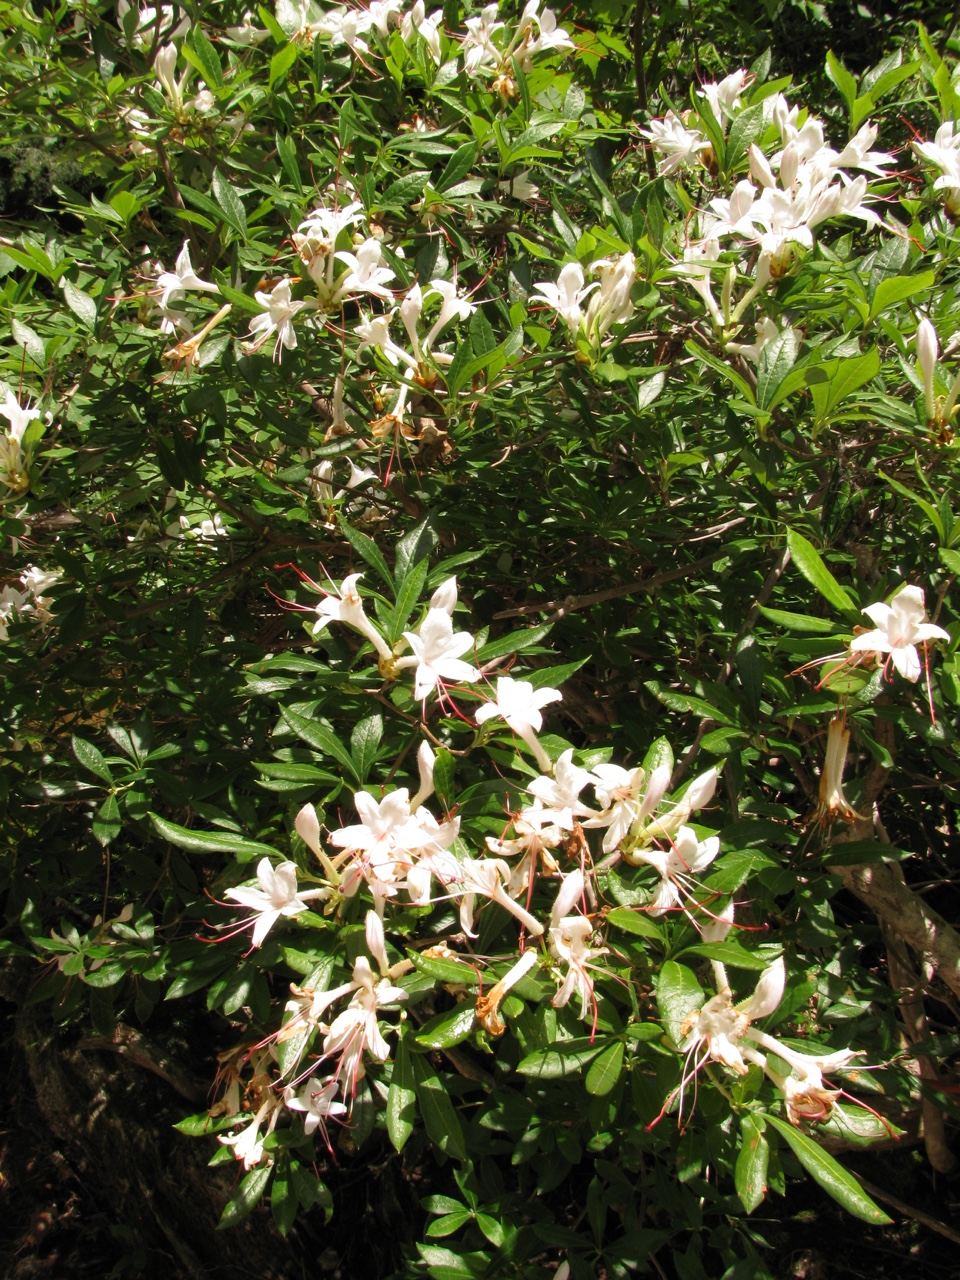 The Scientific Name is Rhododendron arborescens [= Azalea arborescens]. You will likely hear them called Smooth Azalea, Sweet Azalea. This picture shows the  of Rhododendron arborescens [= Azalea arborescens]